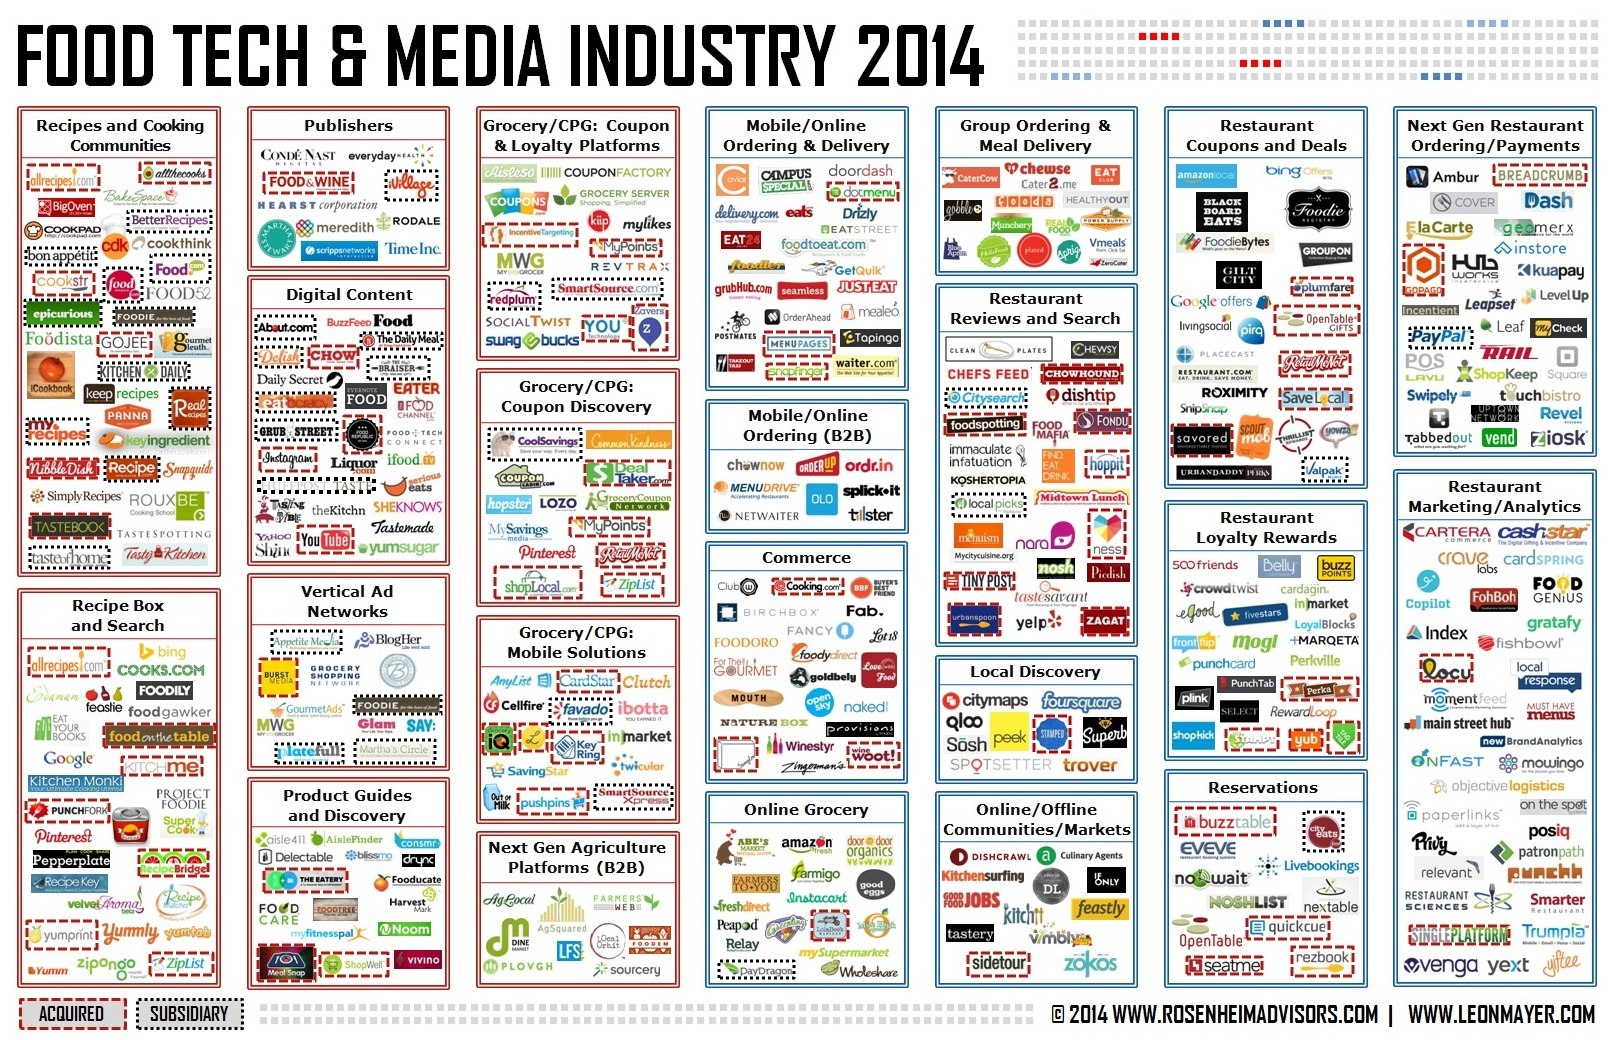 Food Tech and Media Industry 2014 - Rosenheim Advisors and Leon Mayer